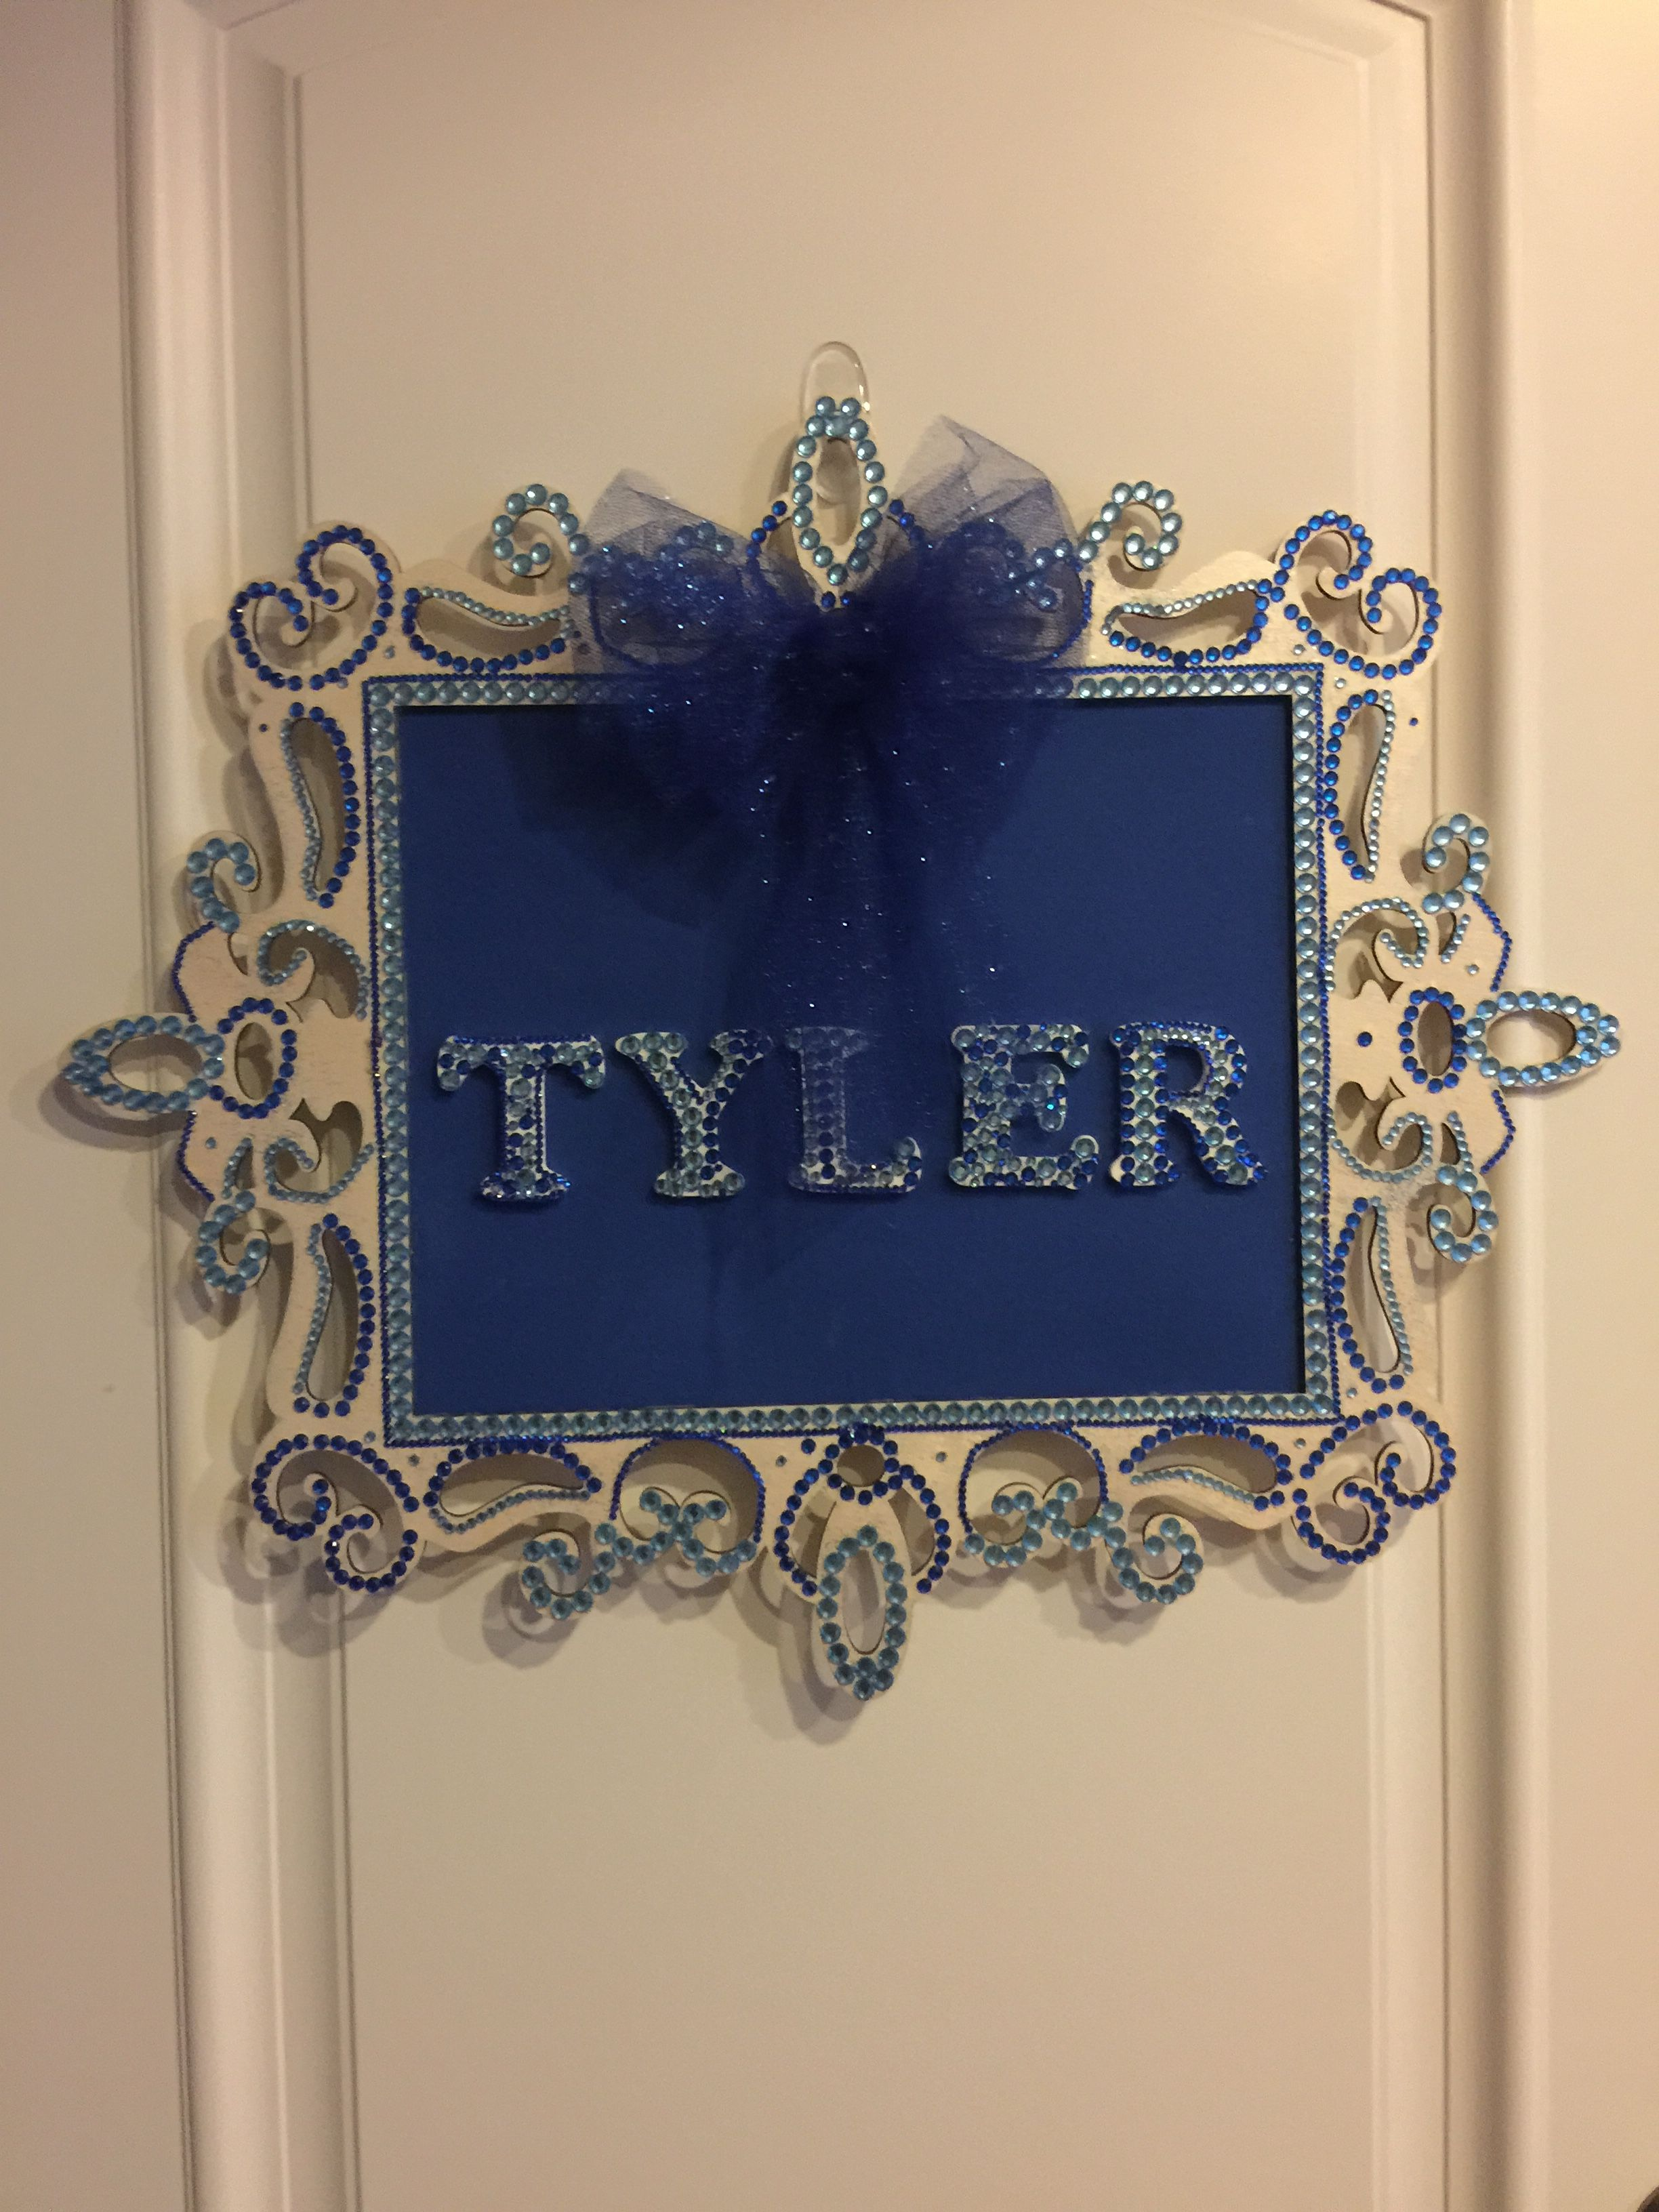 Baby Tyler Door Name Plate Decorative Wood Board For His Room